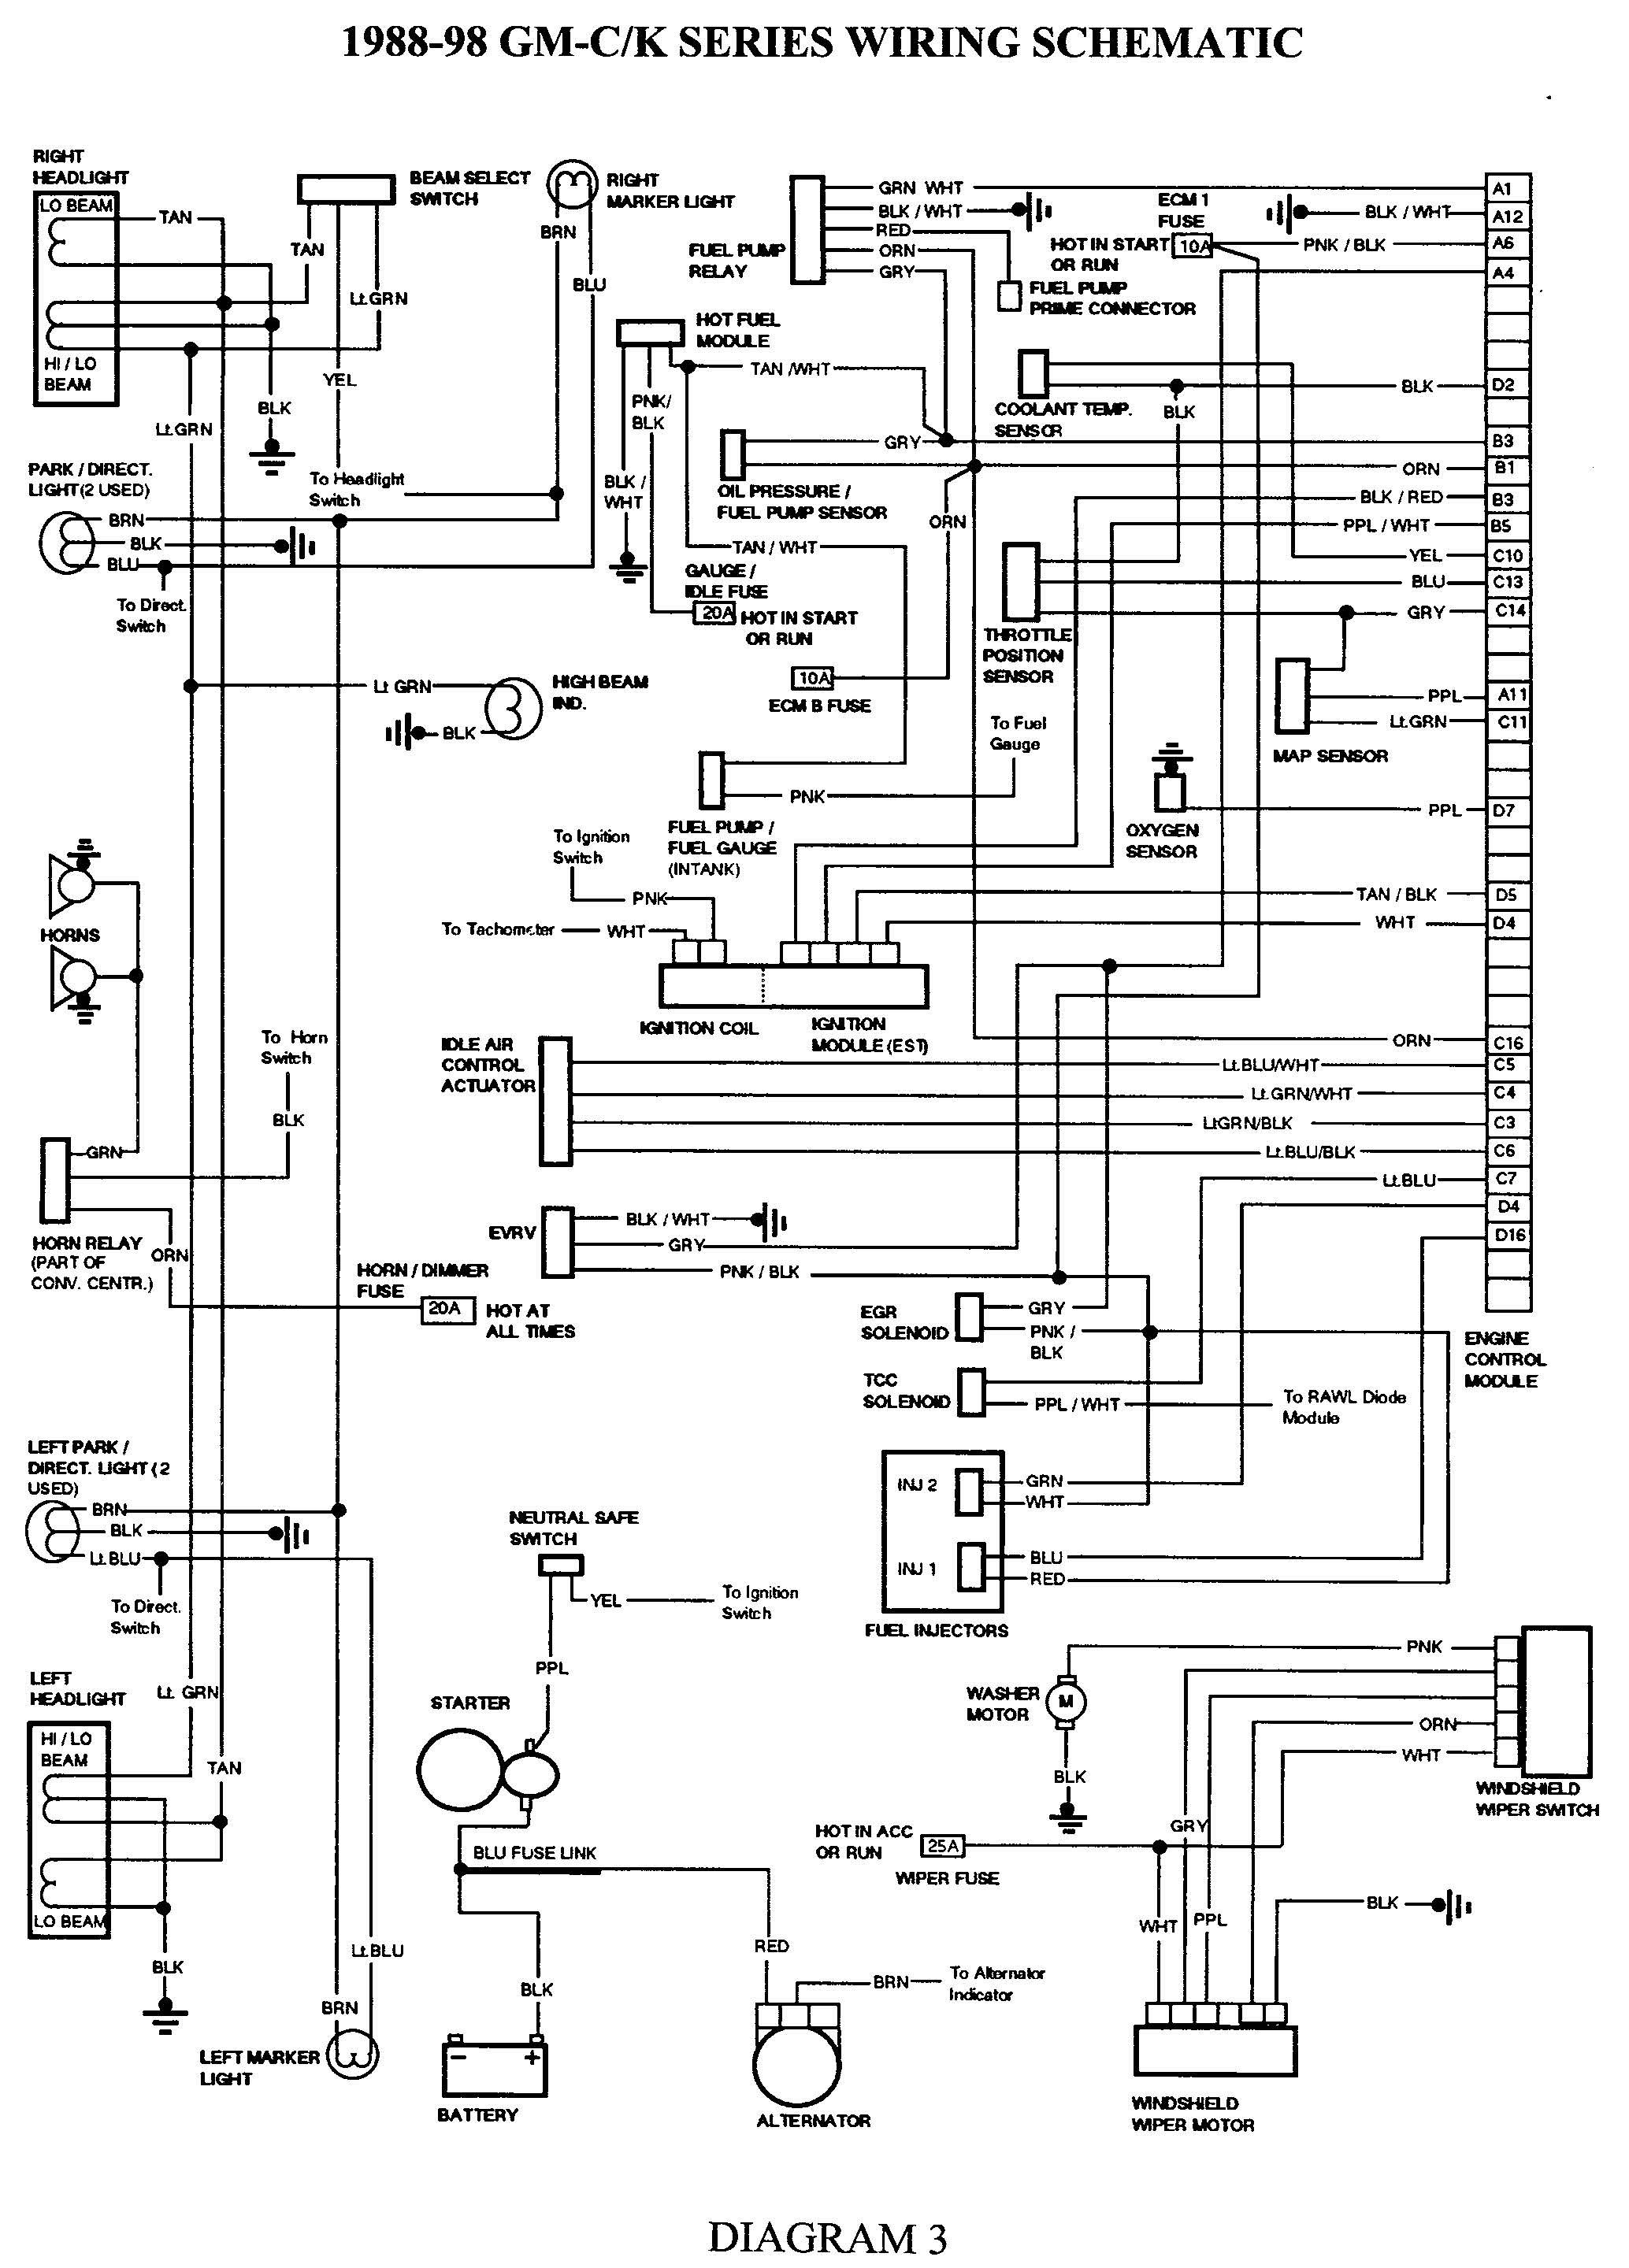 small resolution of 1986 chevrolet c10 5 7 v8 engine wiring diagram chevrolet c 1500 1986 chevy truck ignition switch wiring diagram 1986 chevy c10 engine wiring diagram